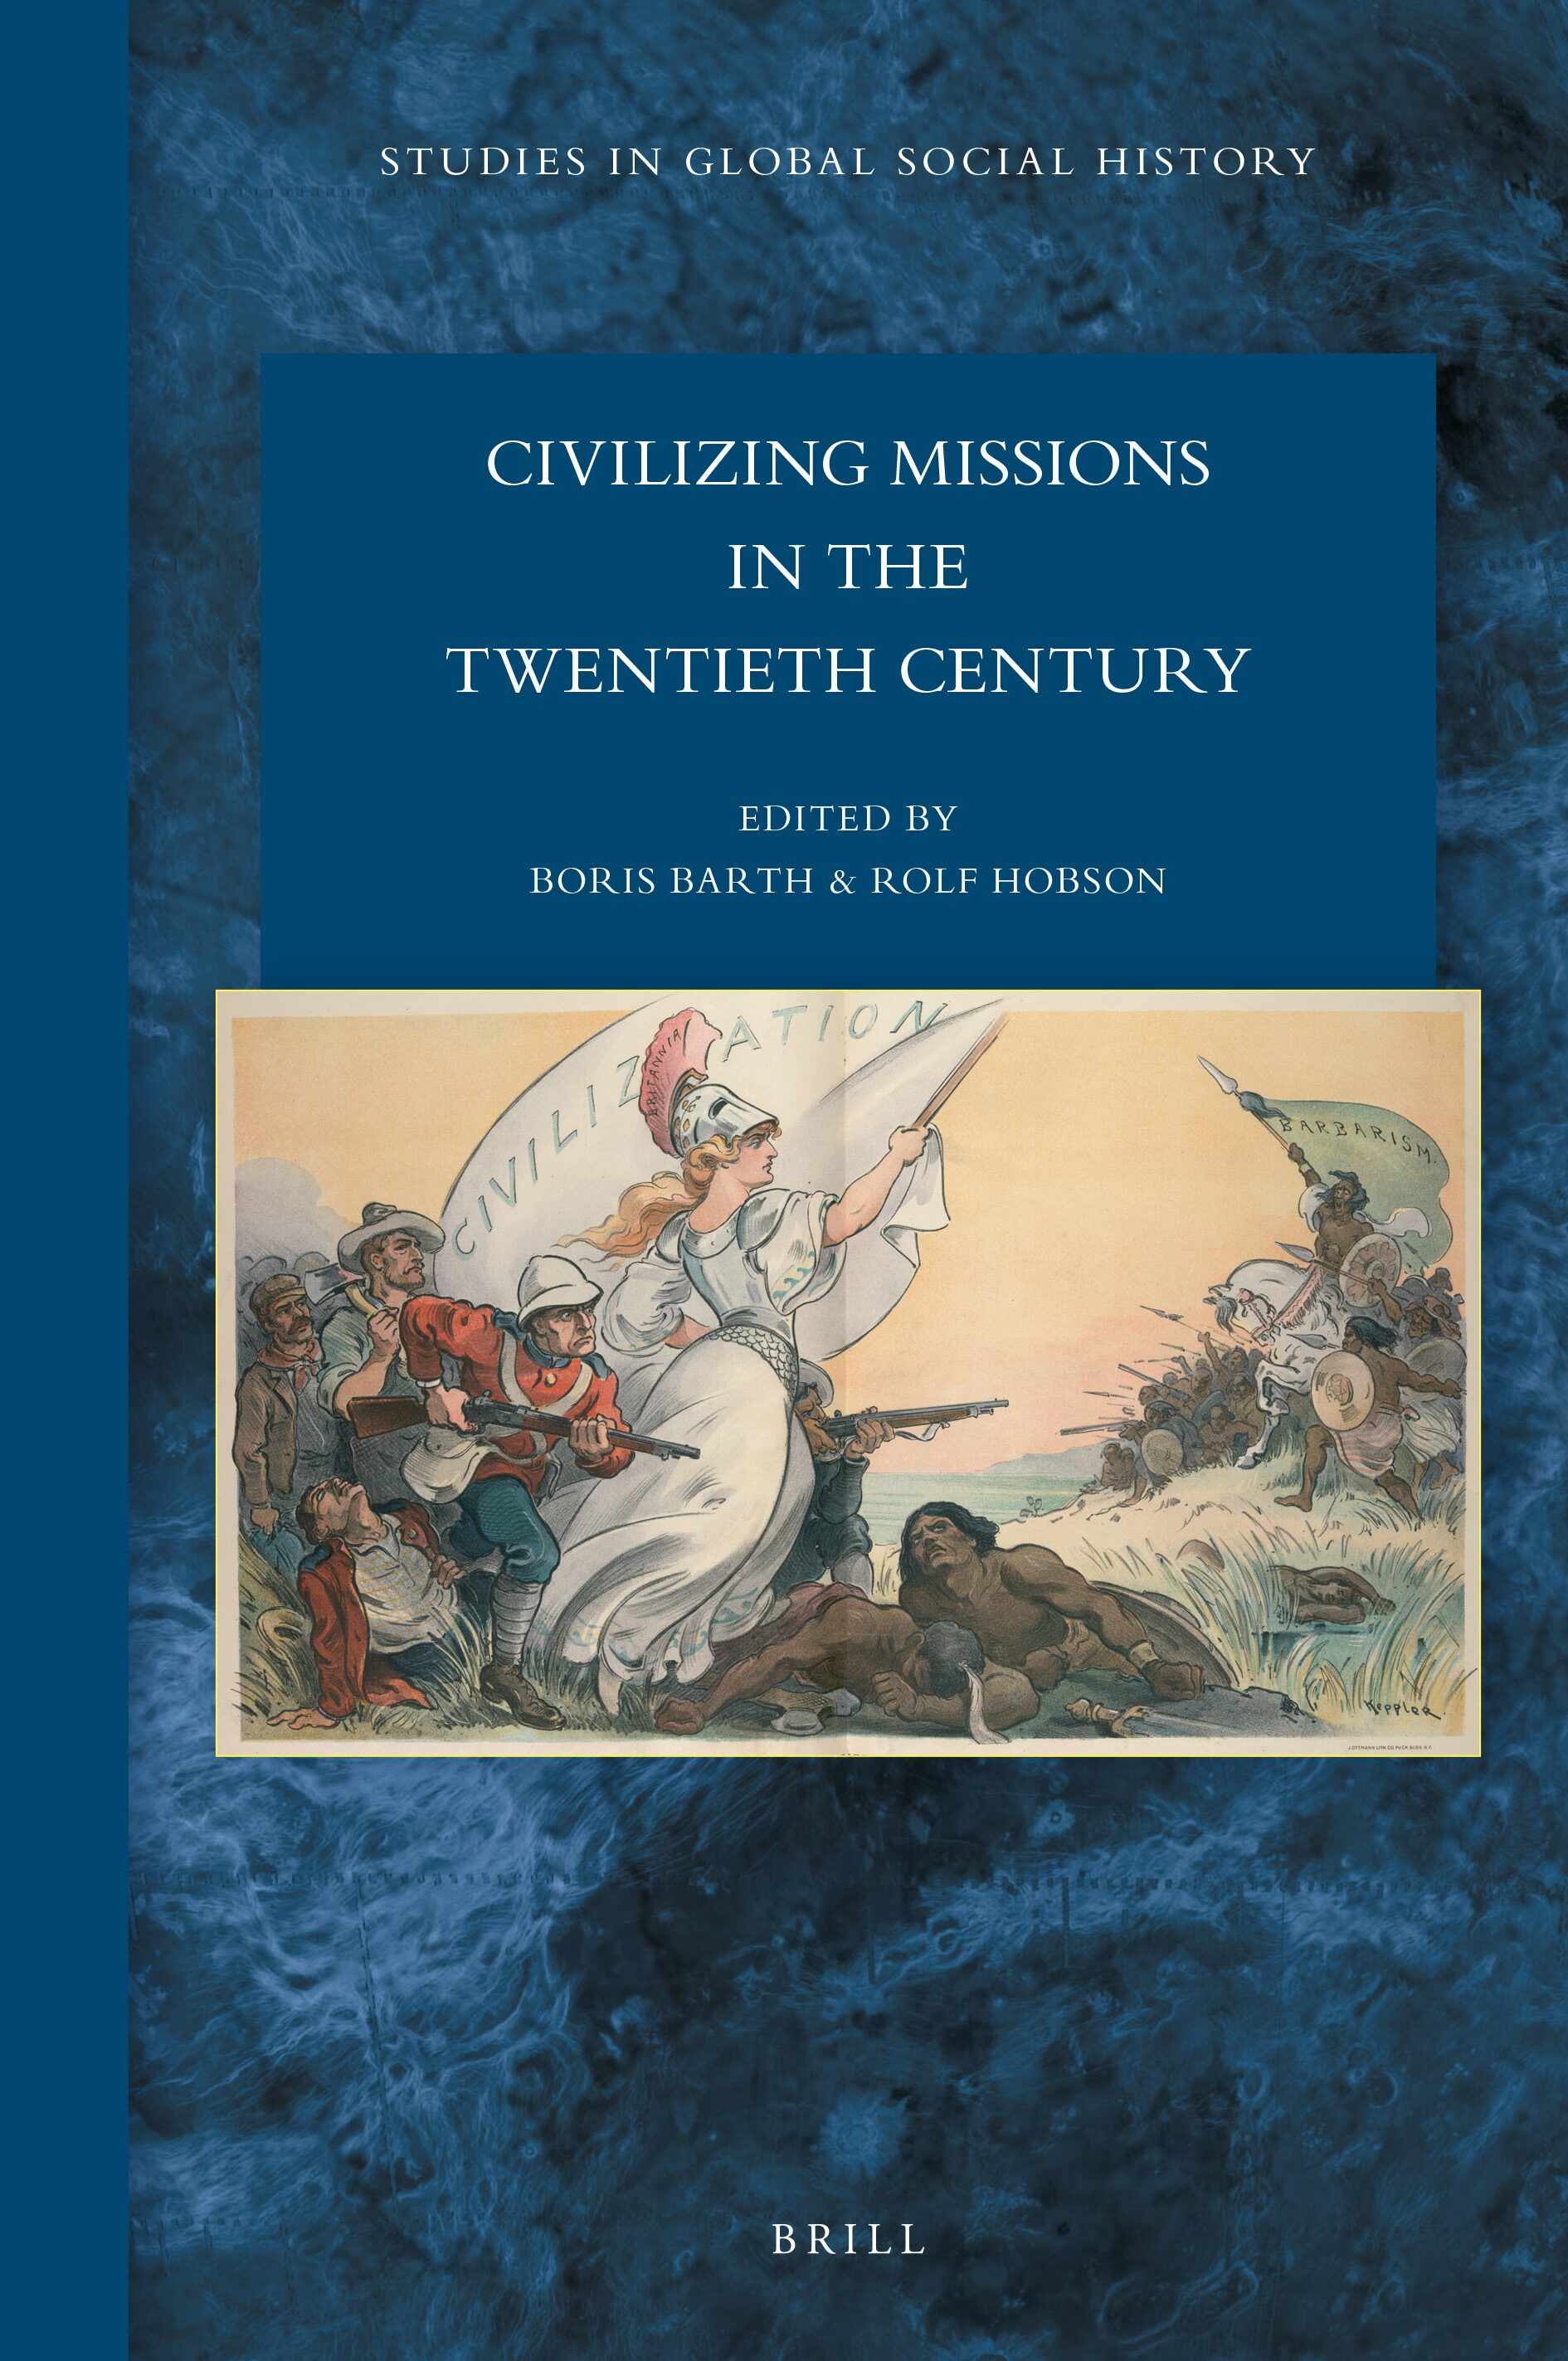 Ambiguities Of The Domestic Civilizing Mission: Technocratic Elites And  Social Engineering In Interwar Europe In: Civilizing Missions In The  Twentieth Century